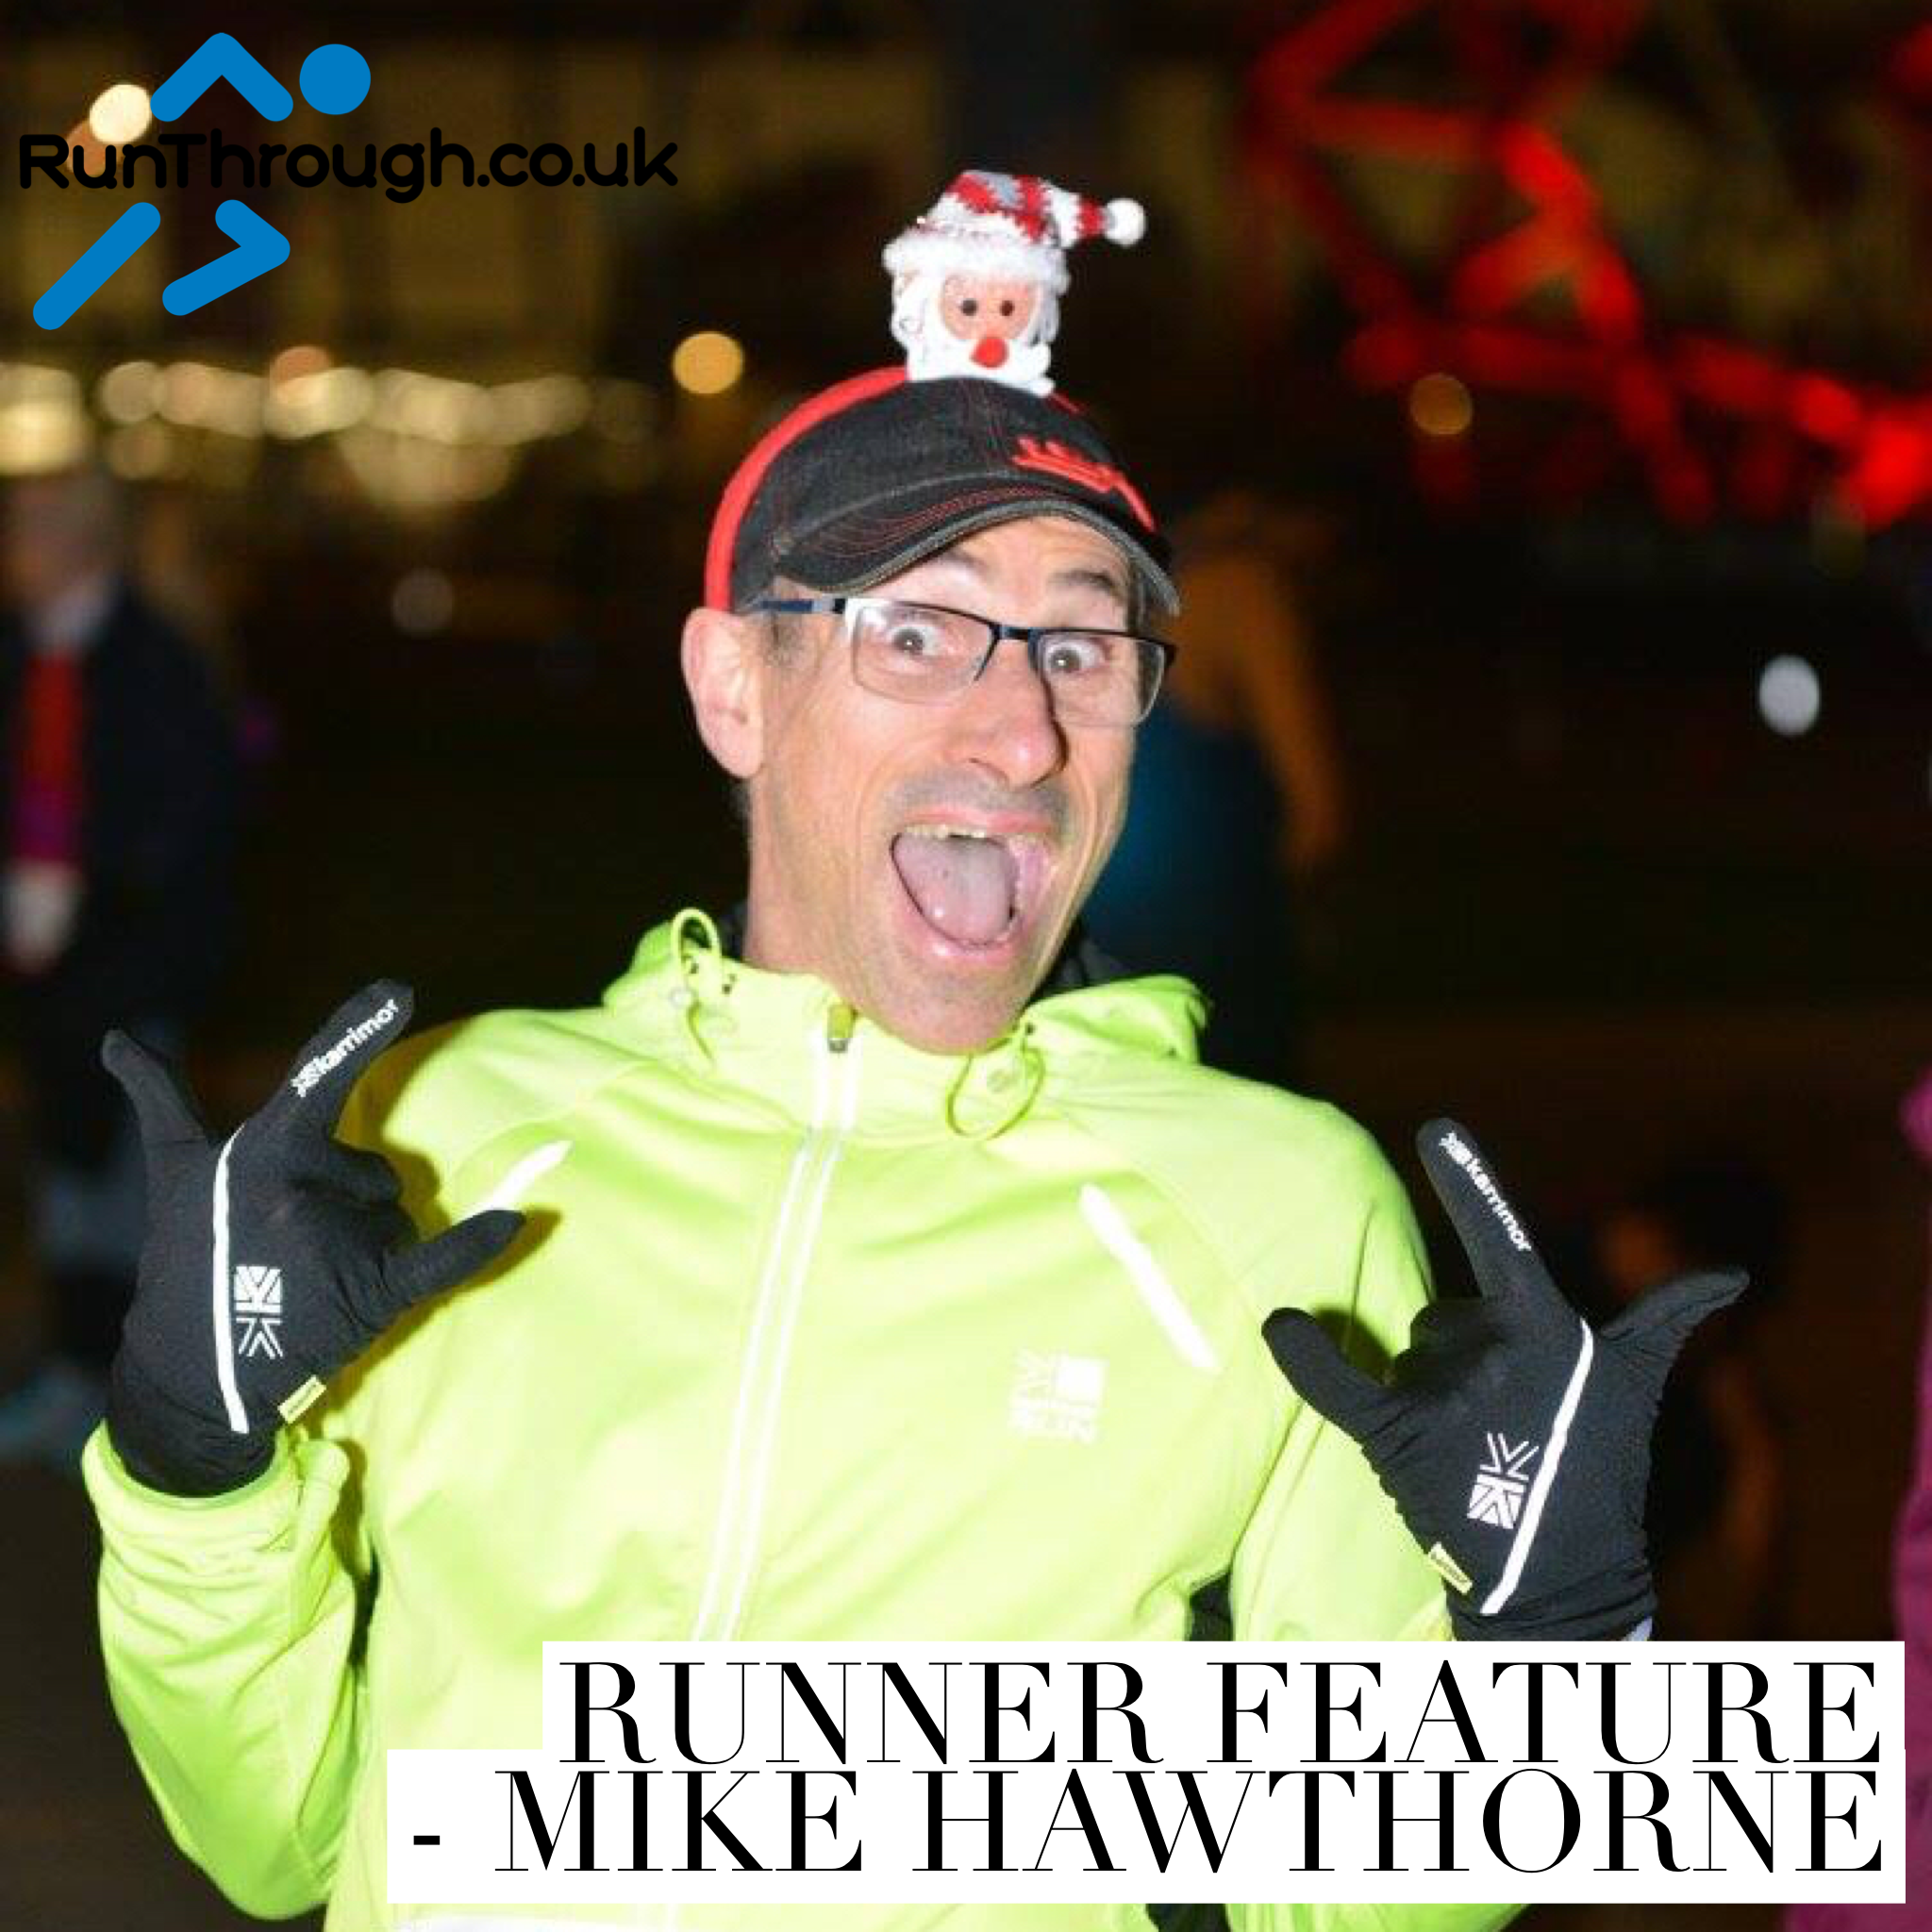 Runner Feature – Mike Hawthorne